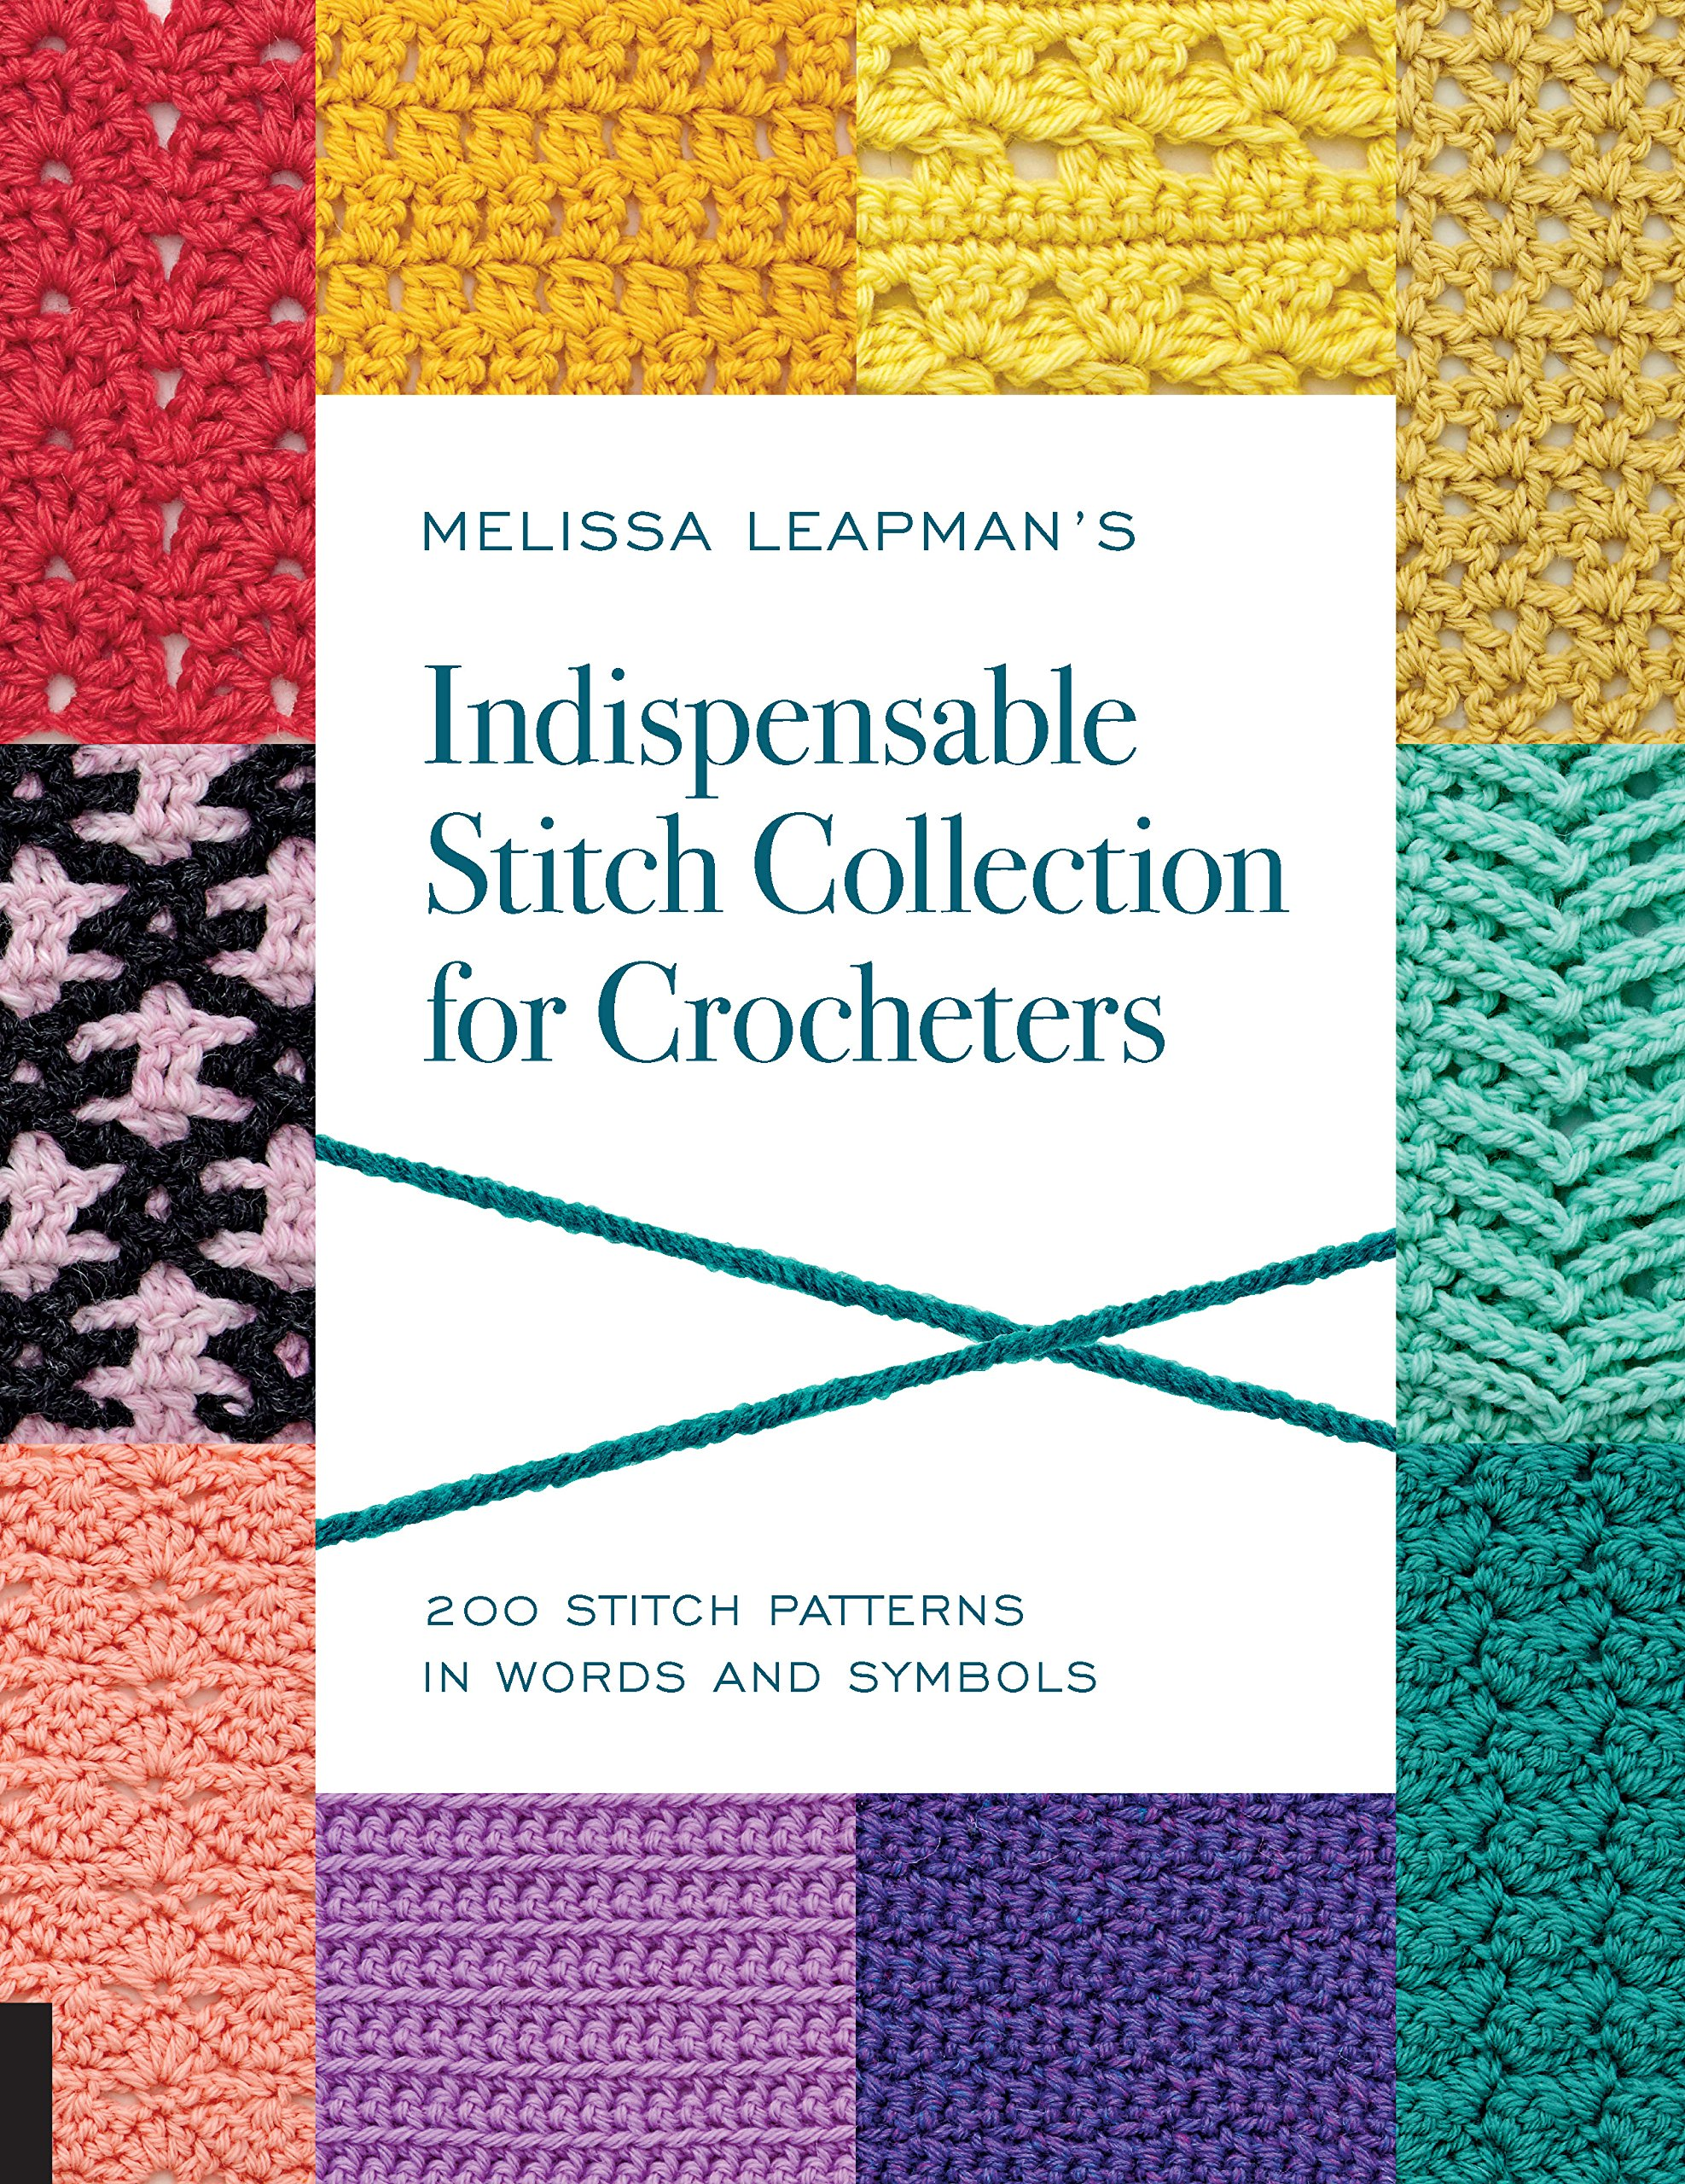 Melissa Leapmans Indispensable Stitch Collection For Crocheters Crochet Tutorial Diagrams Symbols And Abbreviations Beginners 200 Patterns In Words Leapman 9781589239296